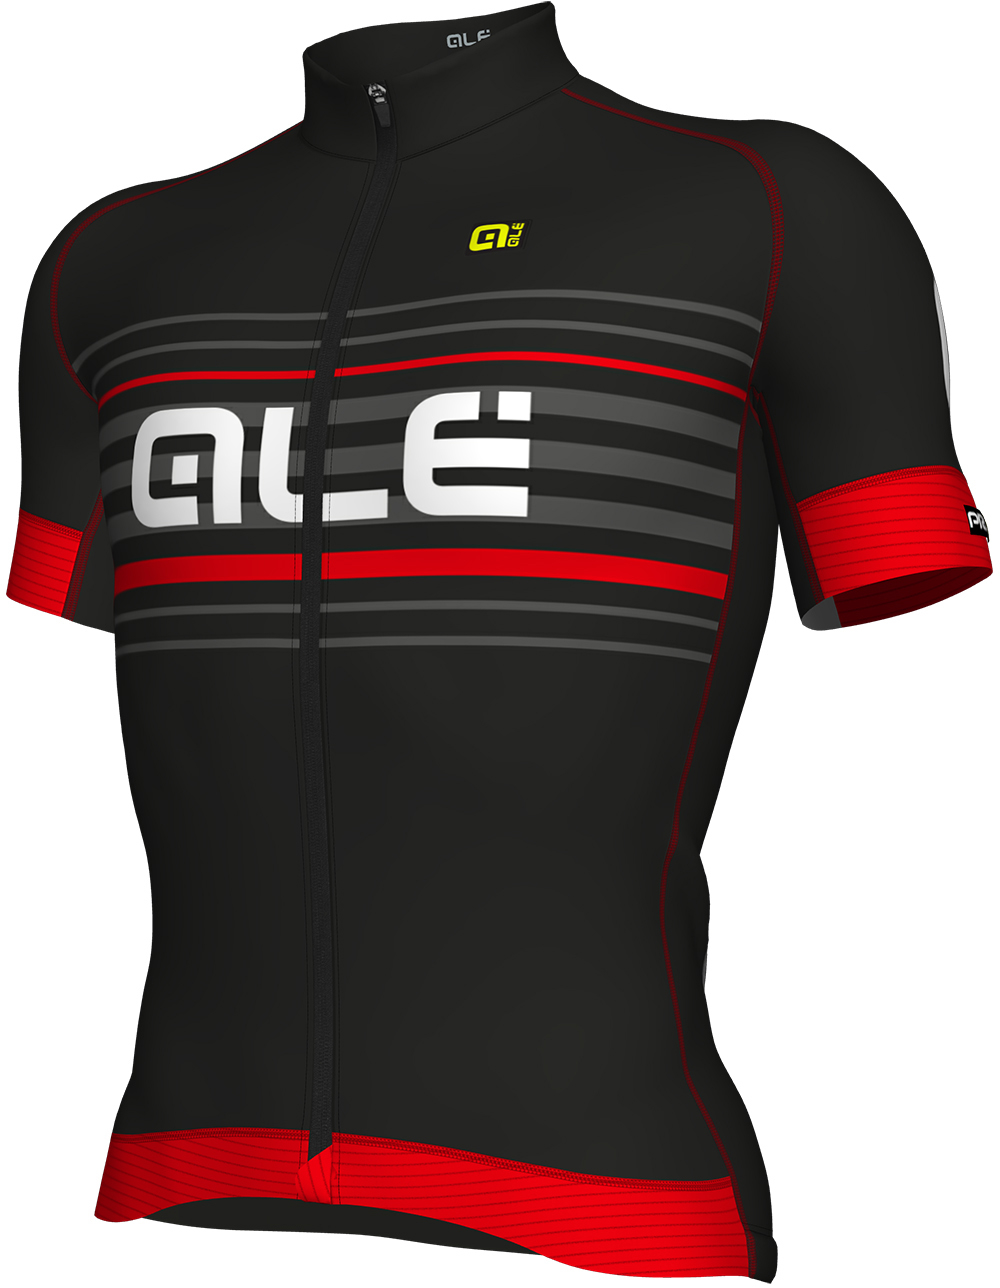 ALÉ GRAPHICS PRR SALITA JERSEY Black/Red